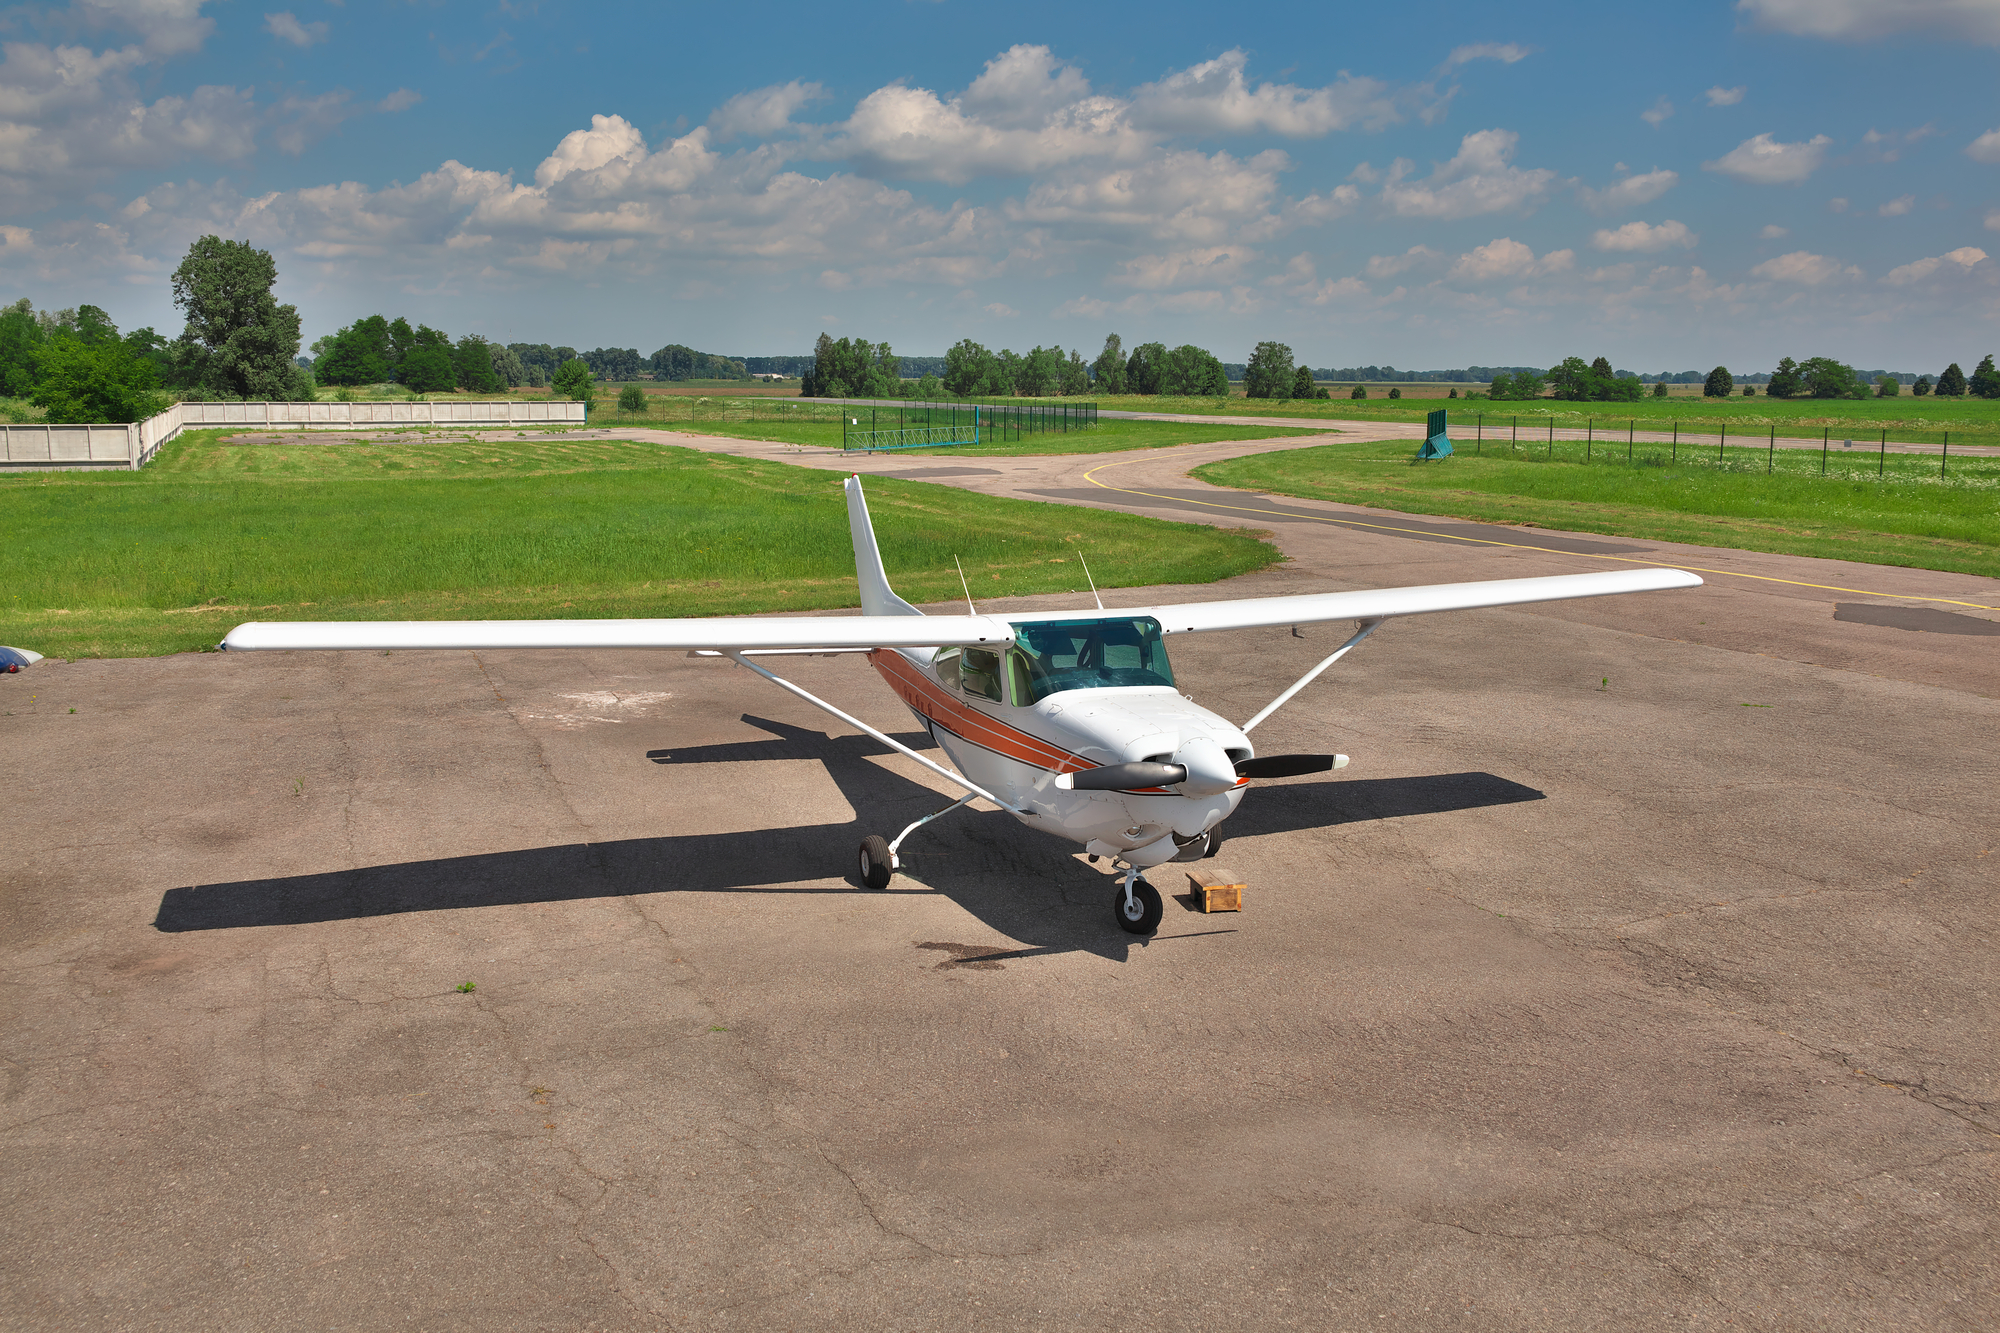 Light Private Plane Parked on the Apron of an Airfield in Summer